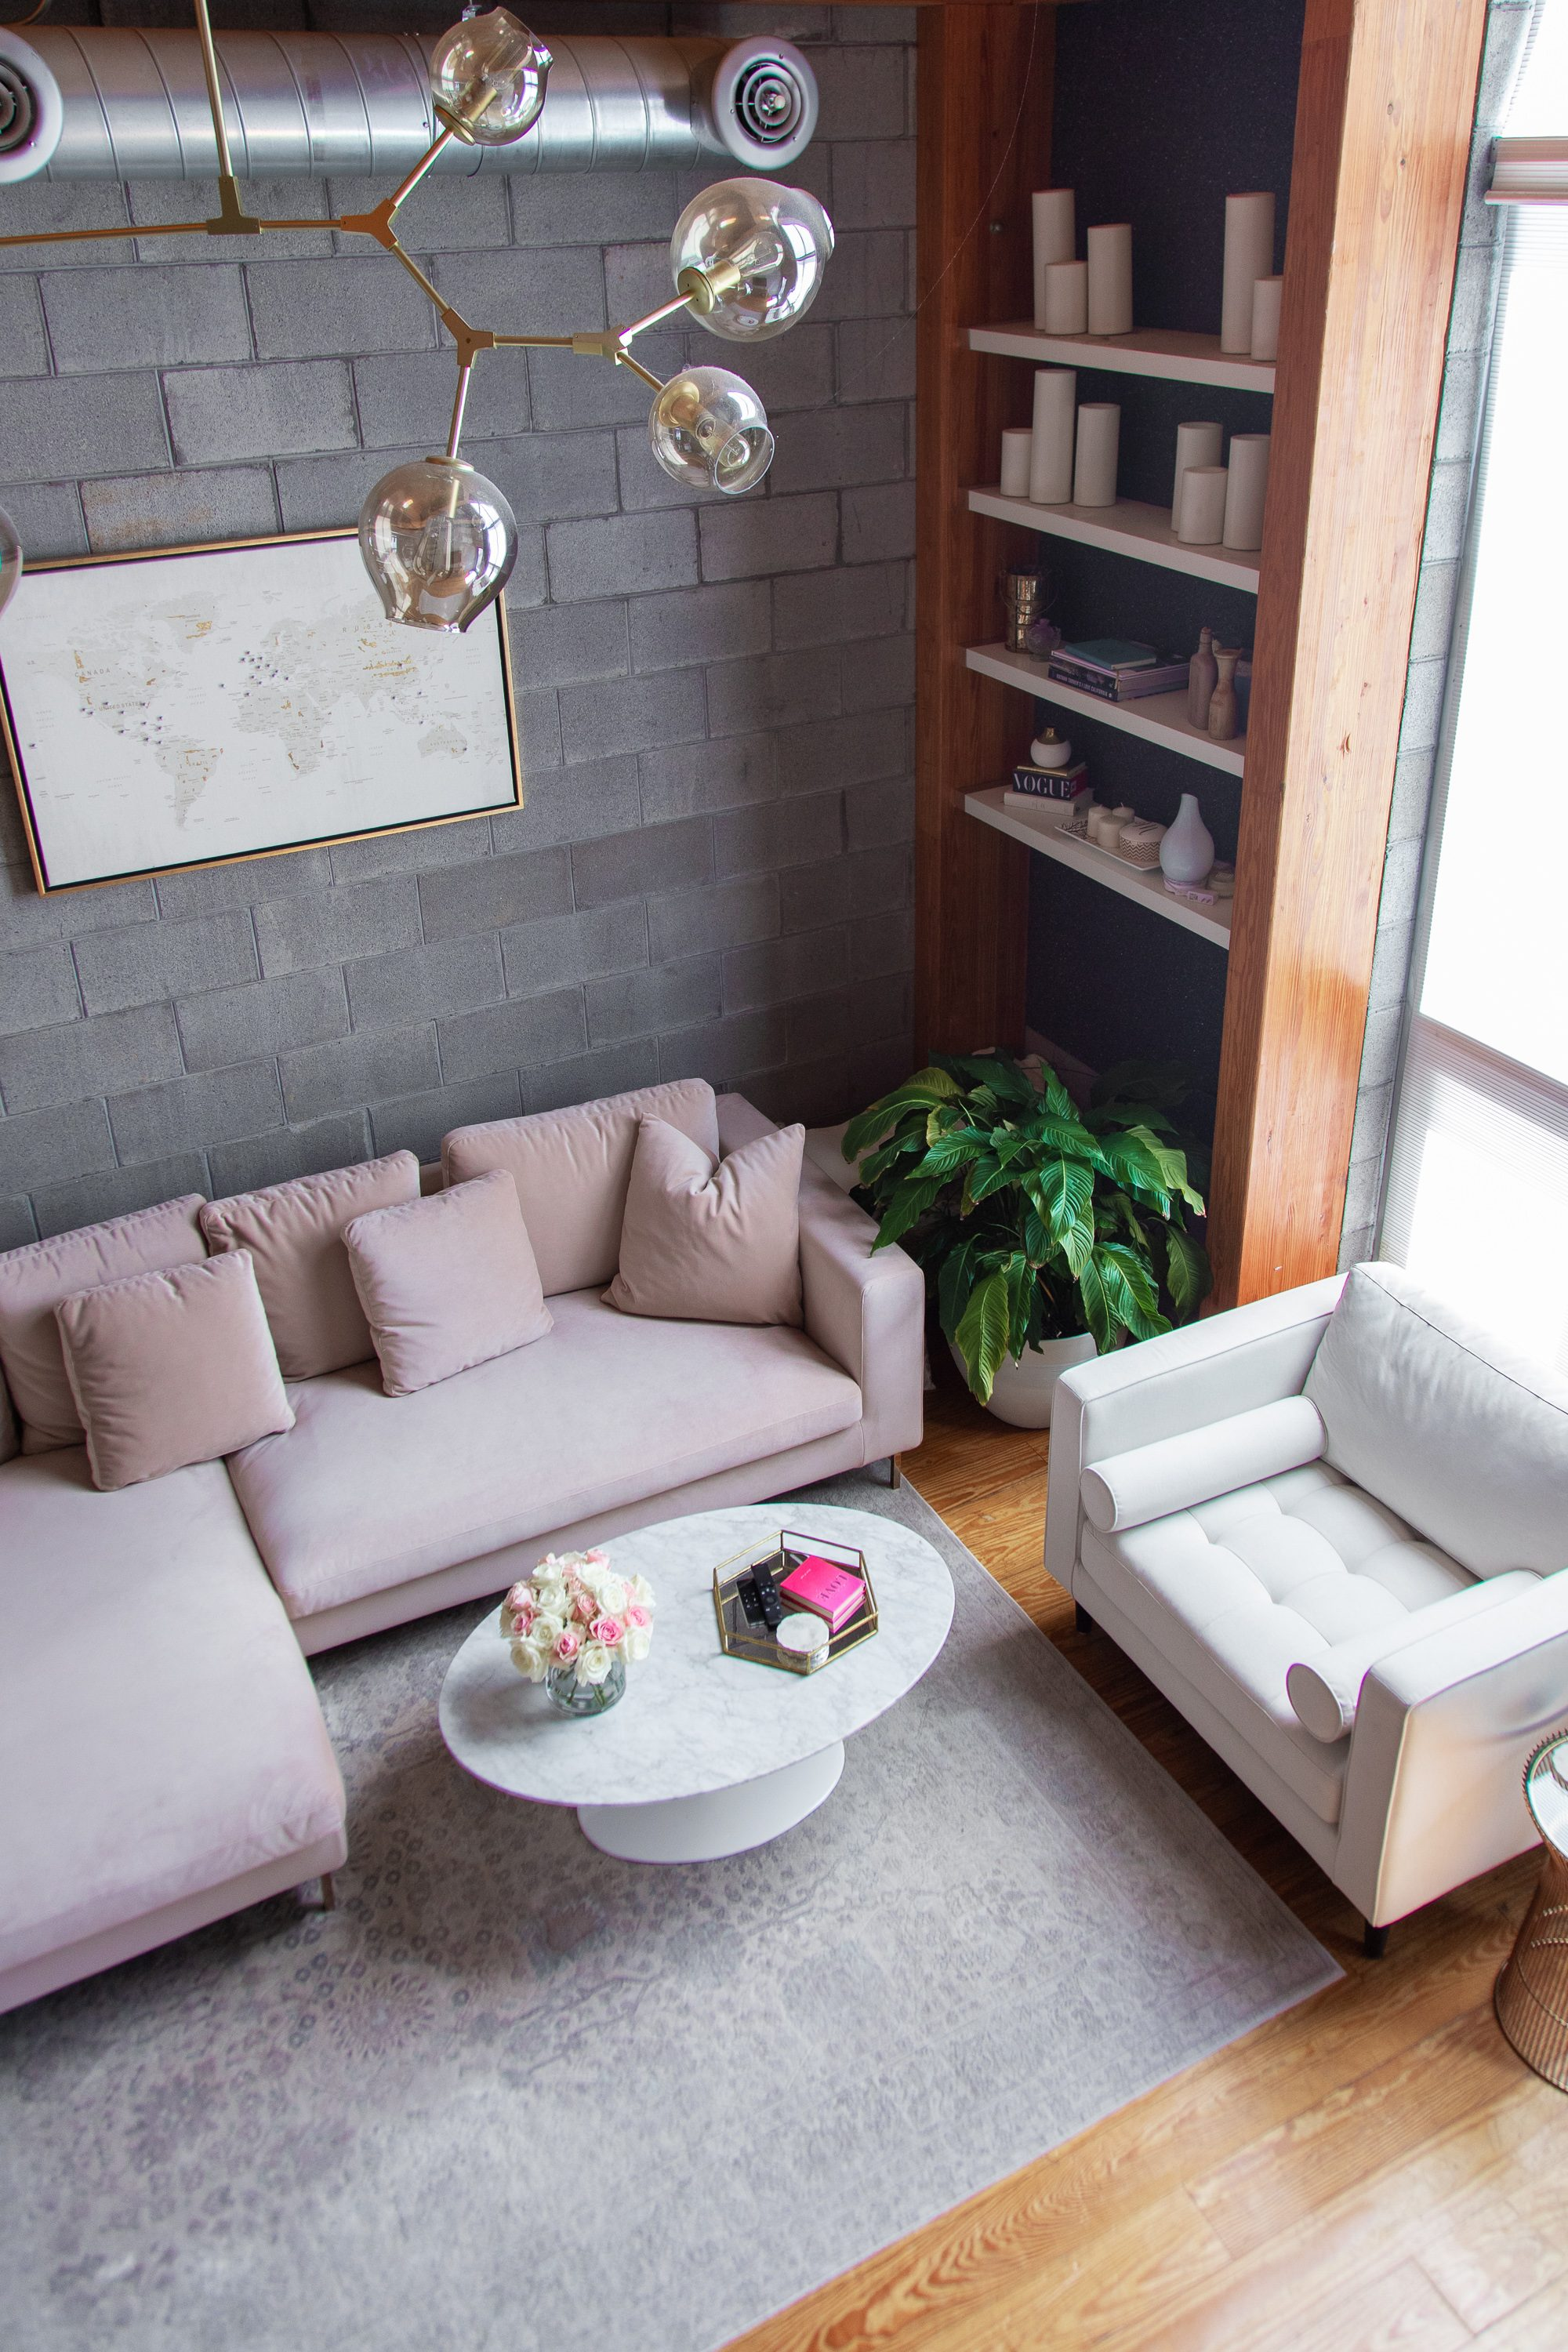 living room makeover, living room reveal, blush pink couch, rove concepts hugo sectional pink, rove concepts luca chairs white, rove concepts marble coffee table, rove concepts petal side table, rove concepts coupon code, rove concepts reviews, feminine living room style, living room before and after